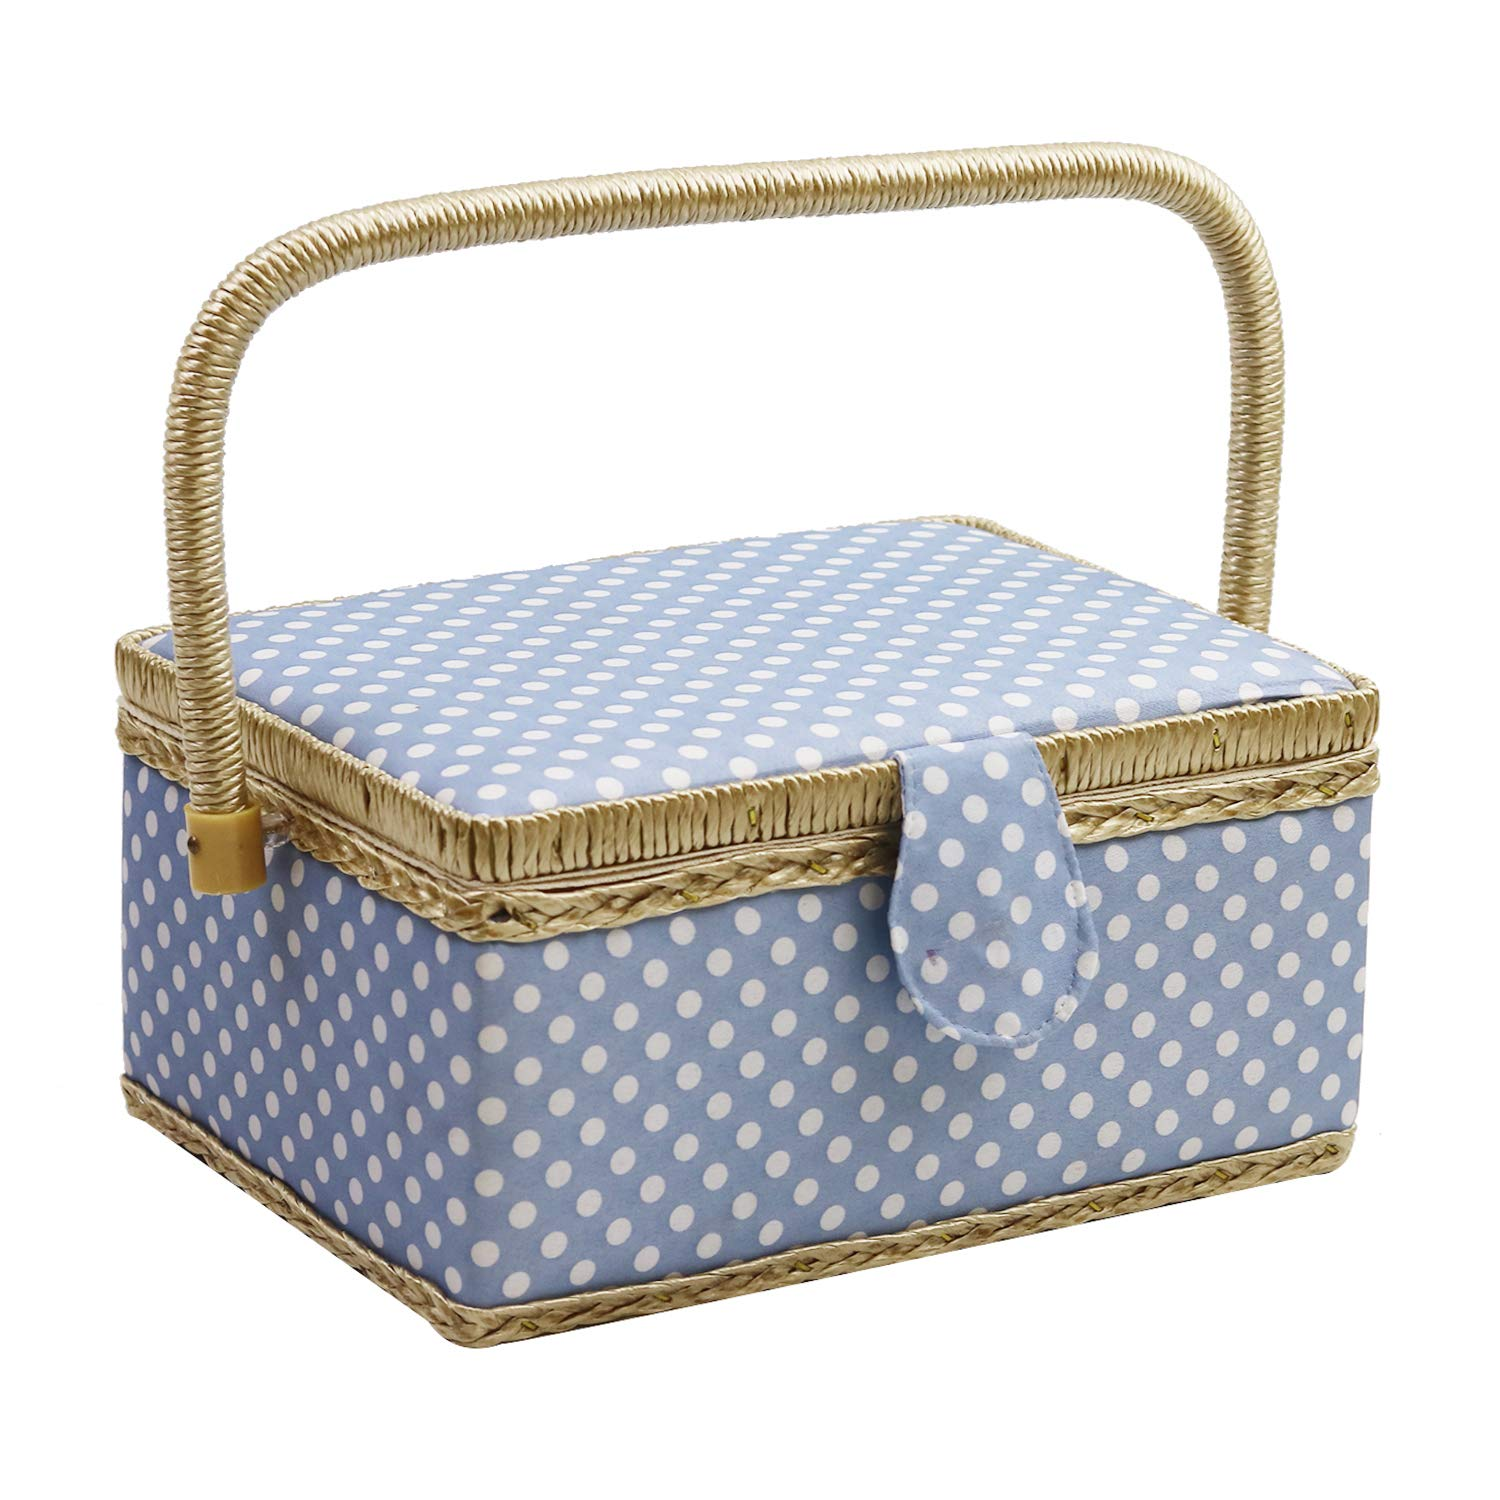 D& D Sewing Basket with Sewing Kit Accessories, Large, Multicolored Sewing Theme, 13400-807